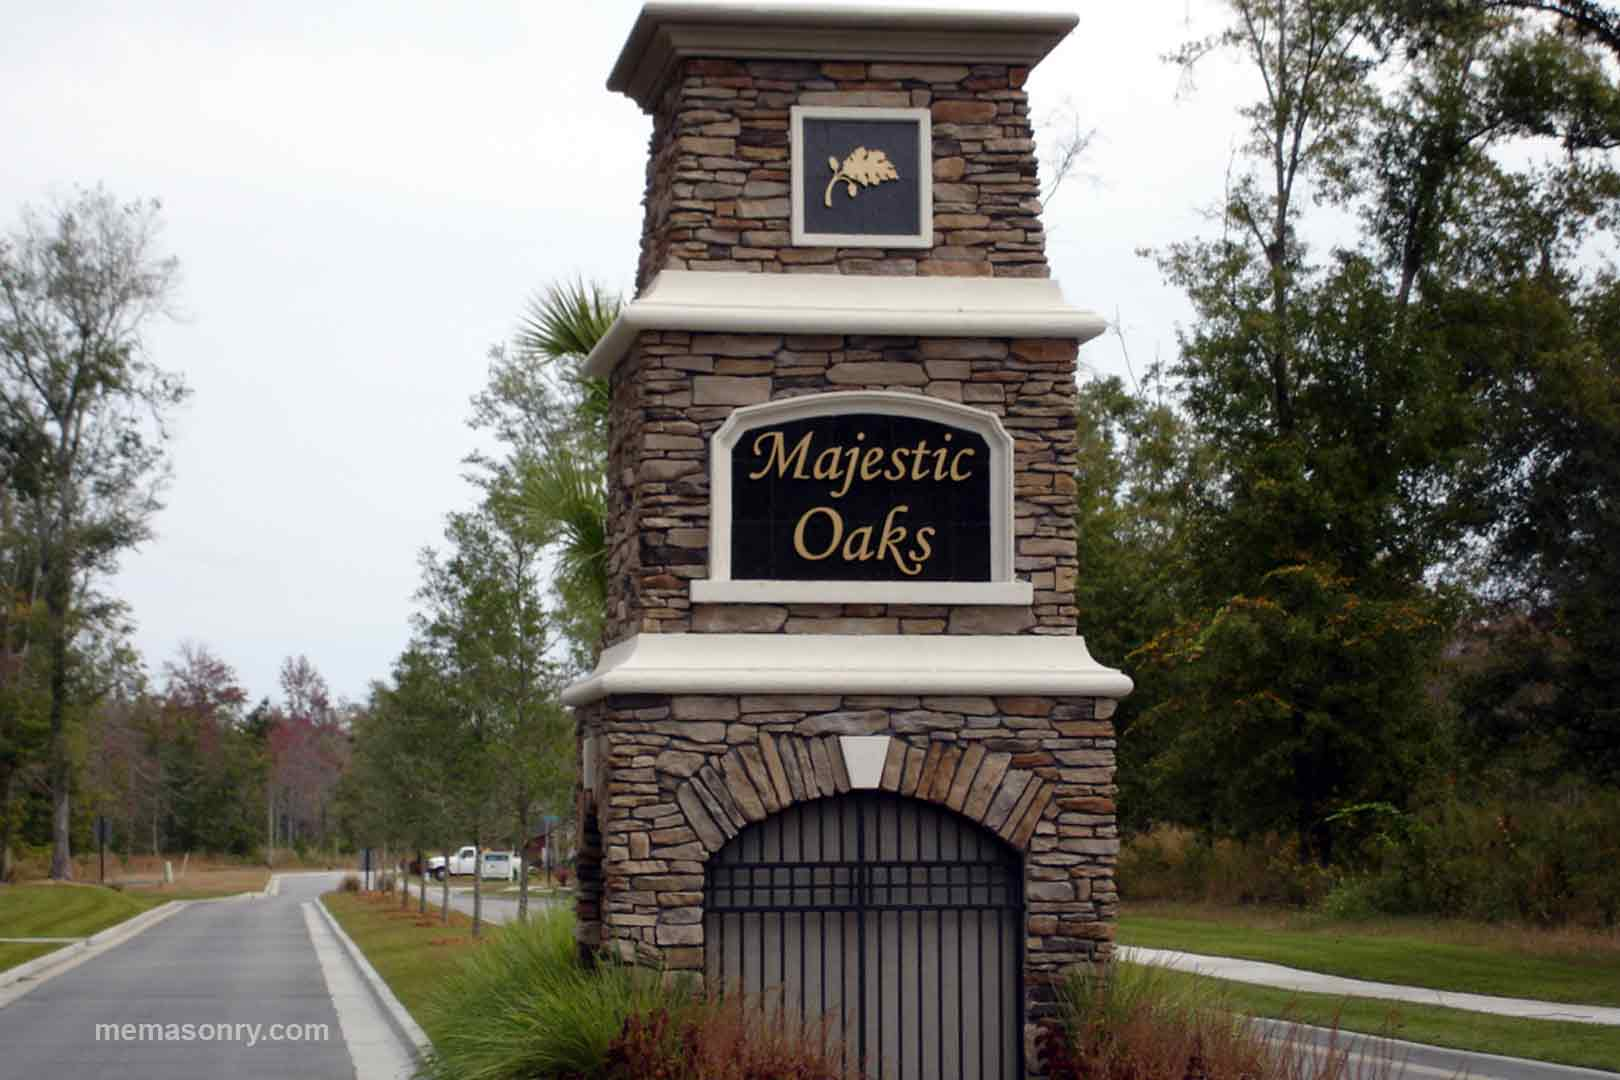 M&E Masonry & Sons Majestic Oaks project